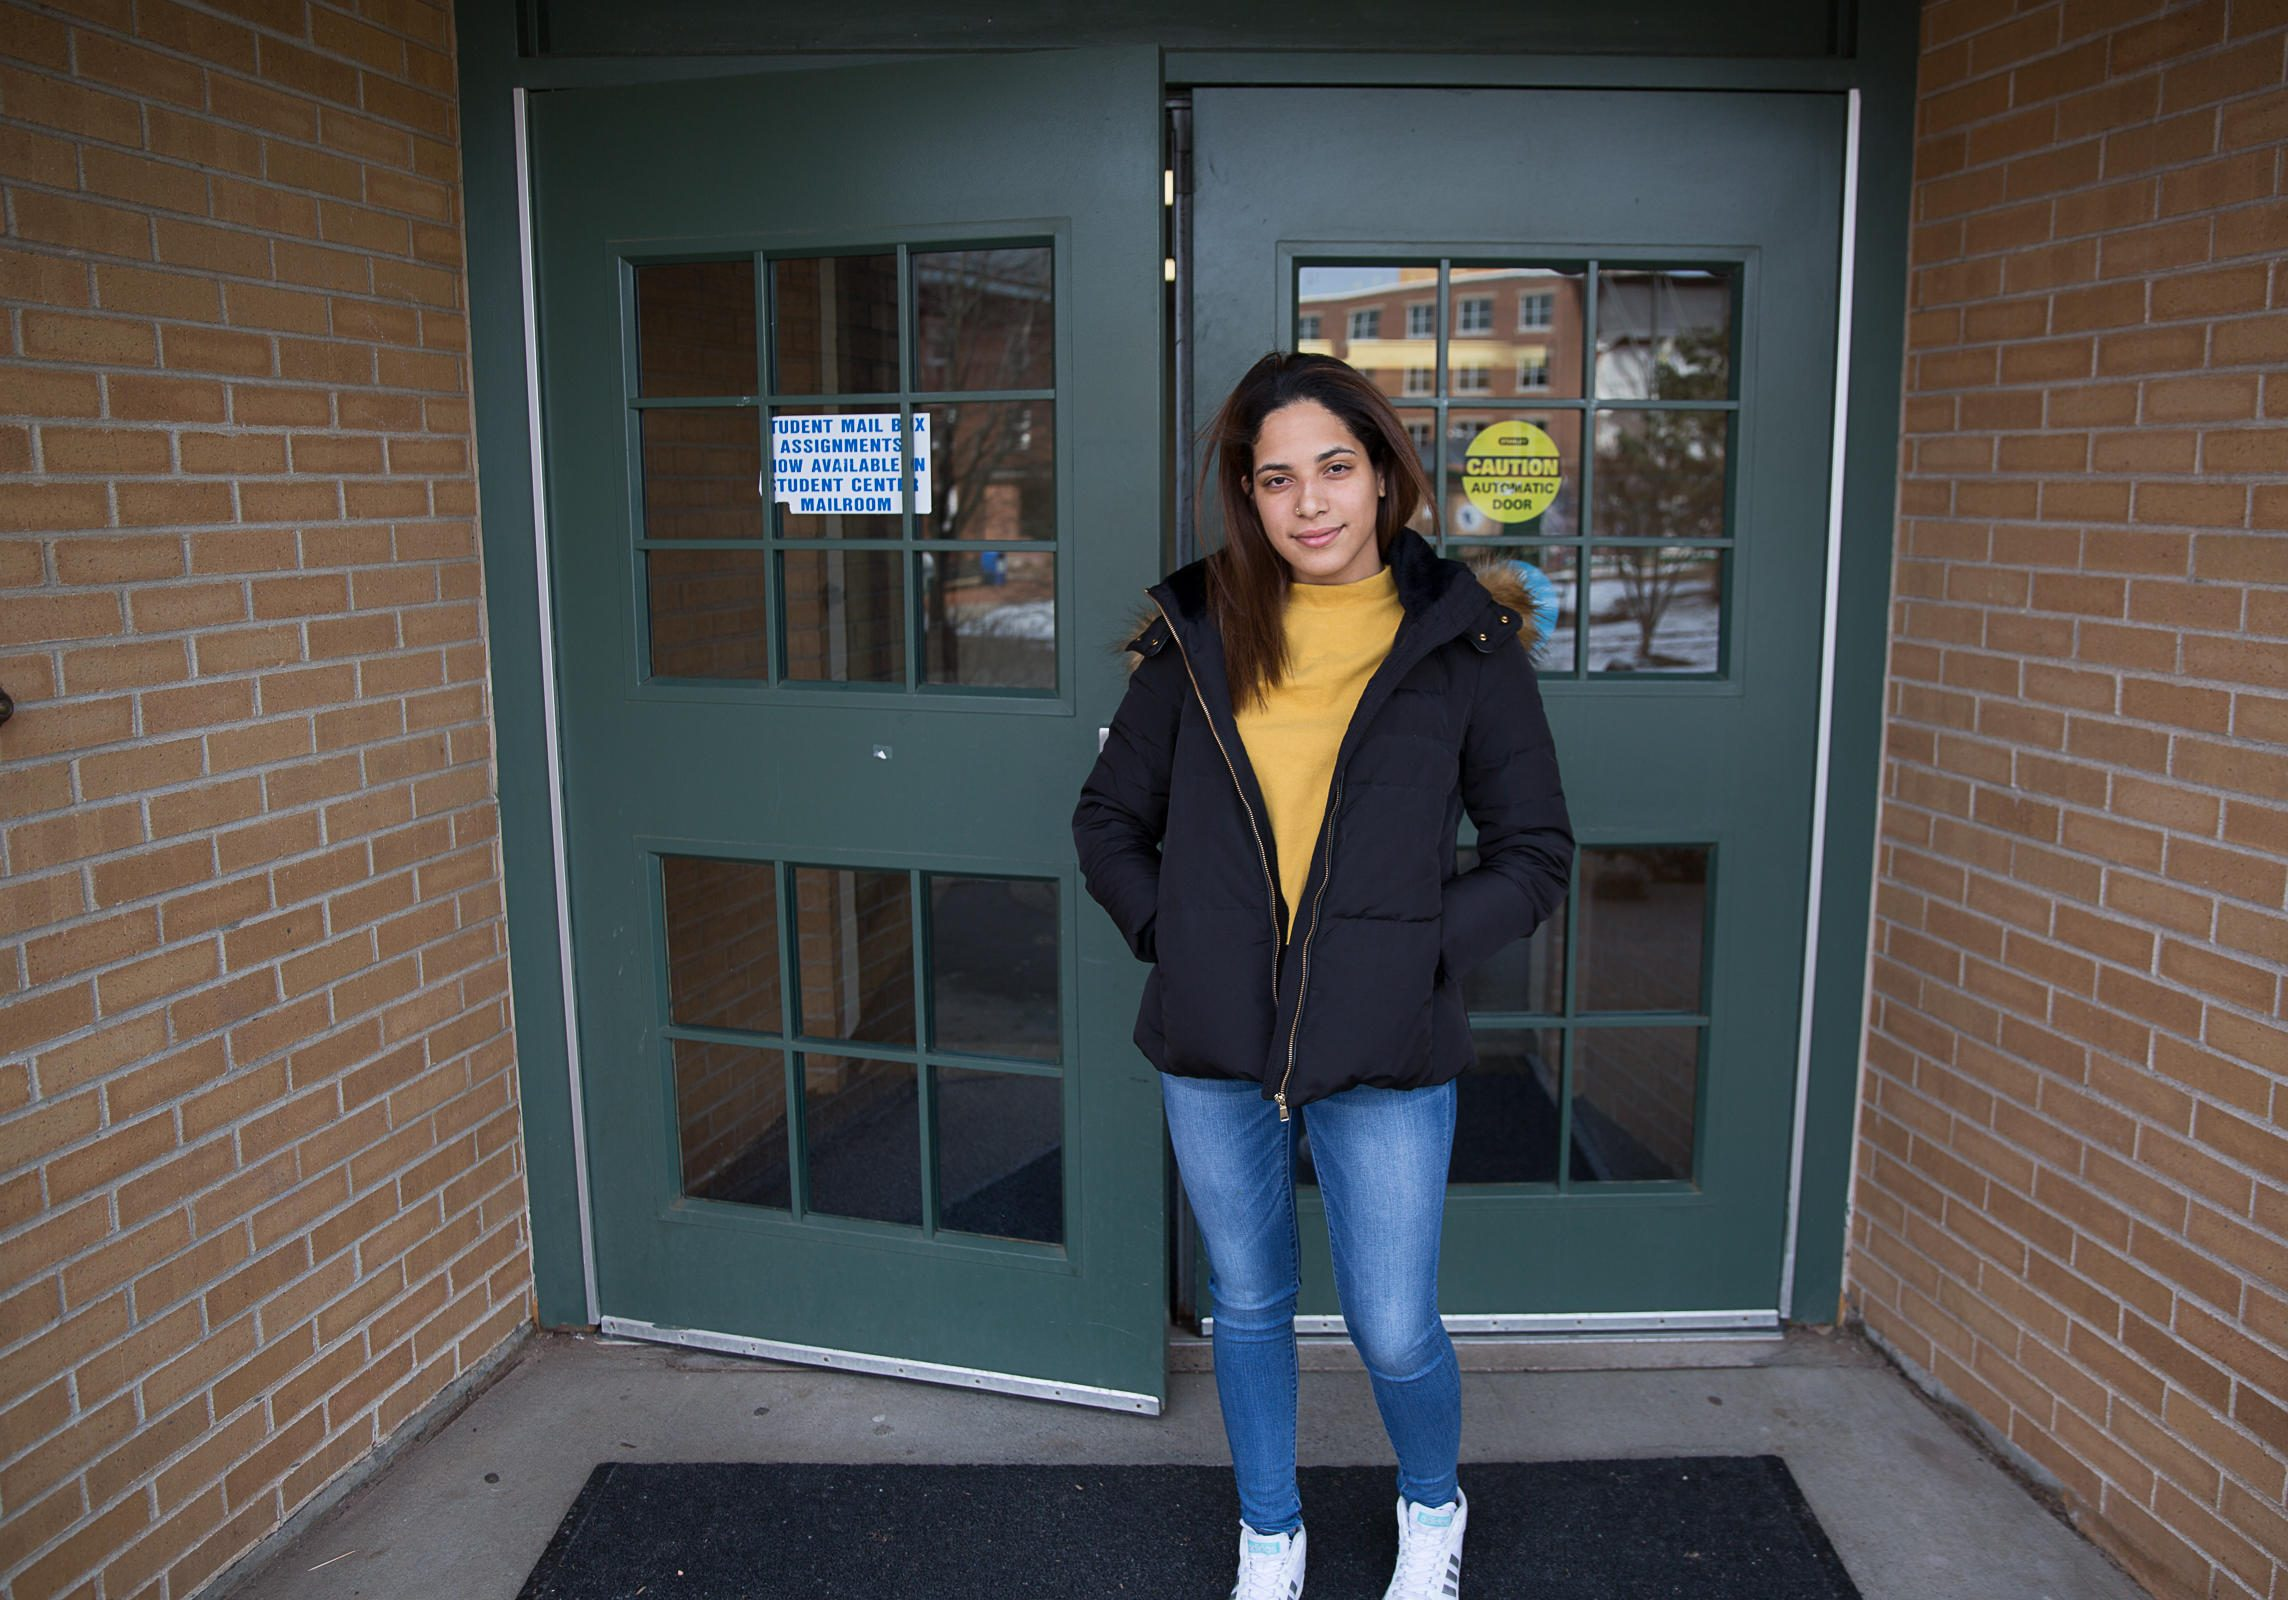 Marivelisse Acosta is from San Juan, Puerto Rico. She's now studying communications at CCSU in New Britain, Connecticut. Photo by Ryan Caron King for Connecticut Public Radio